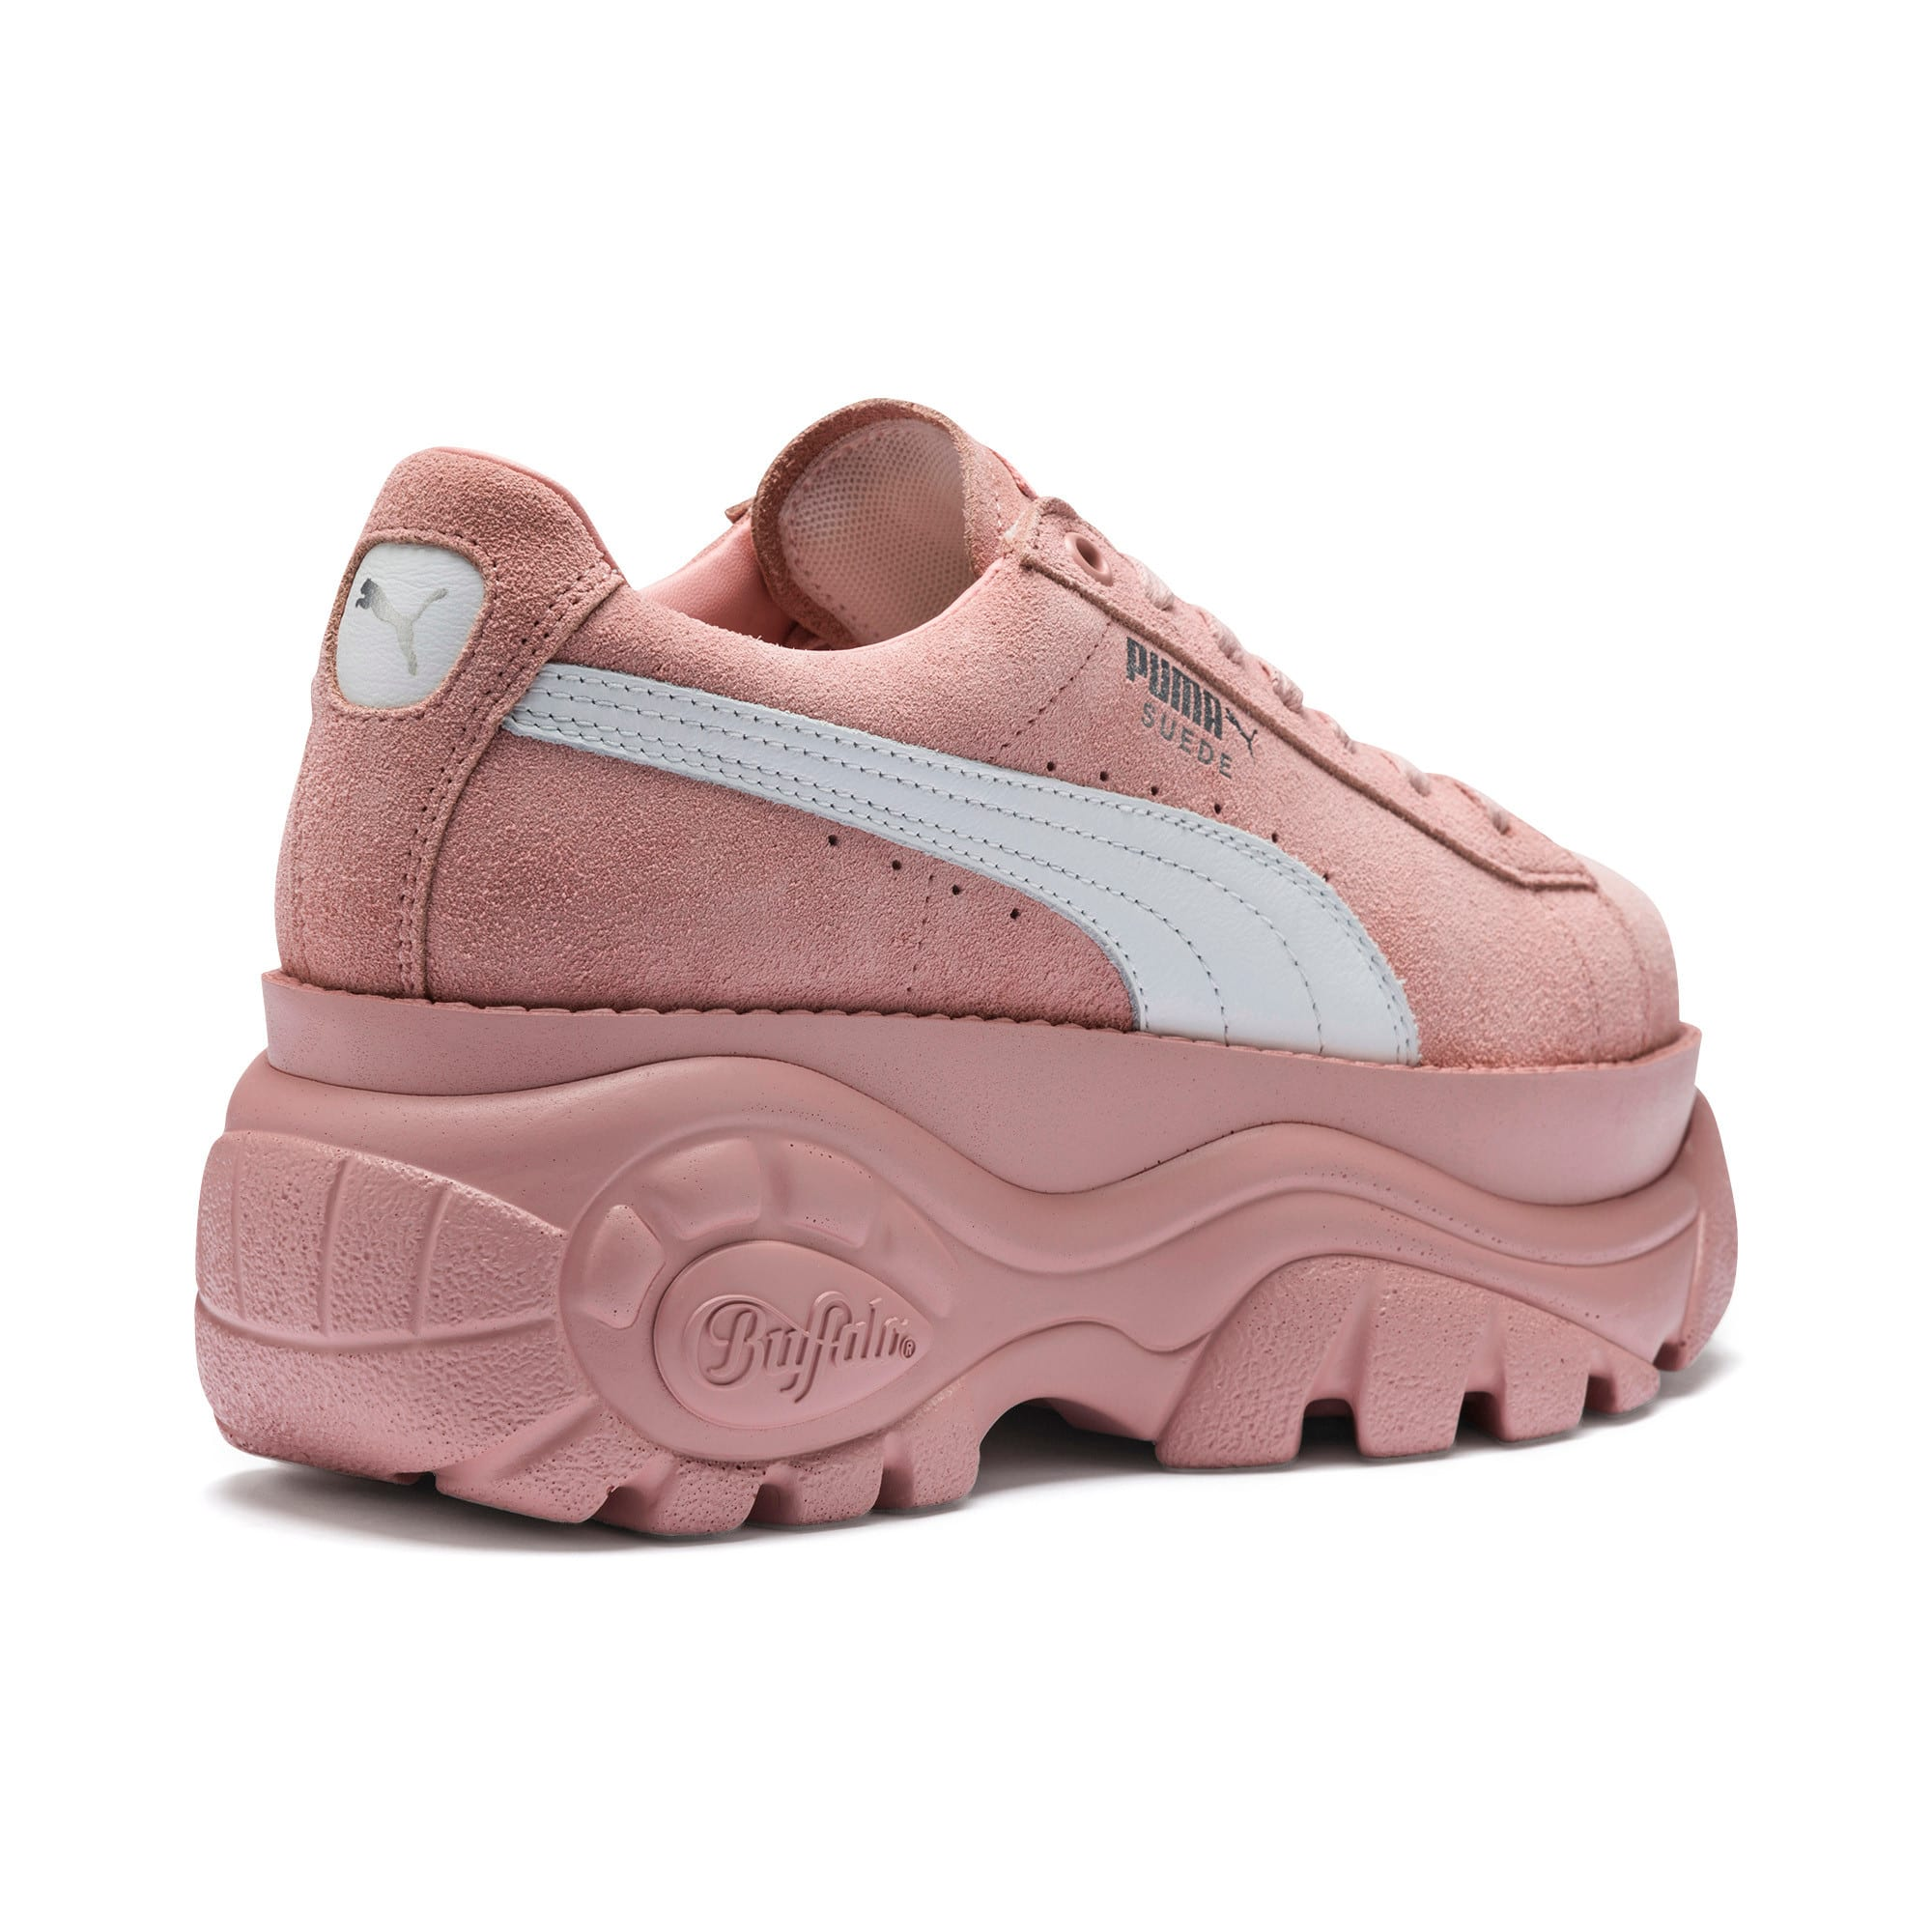 Thumbnail 7 of PUMA x BUFFALO Suede Shoes, Mellow Rose-Puma White, medium